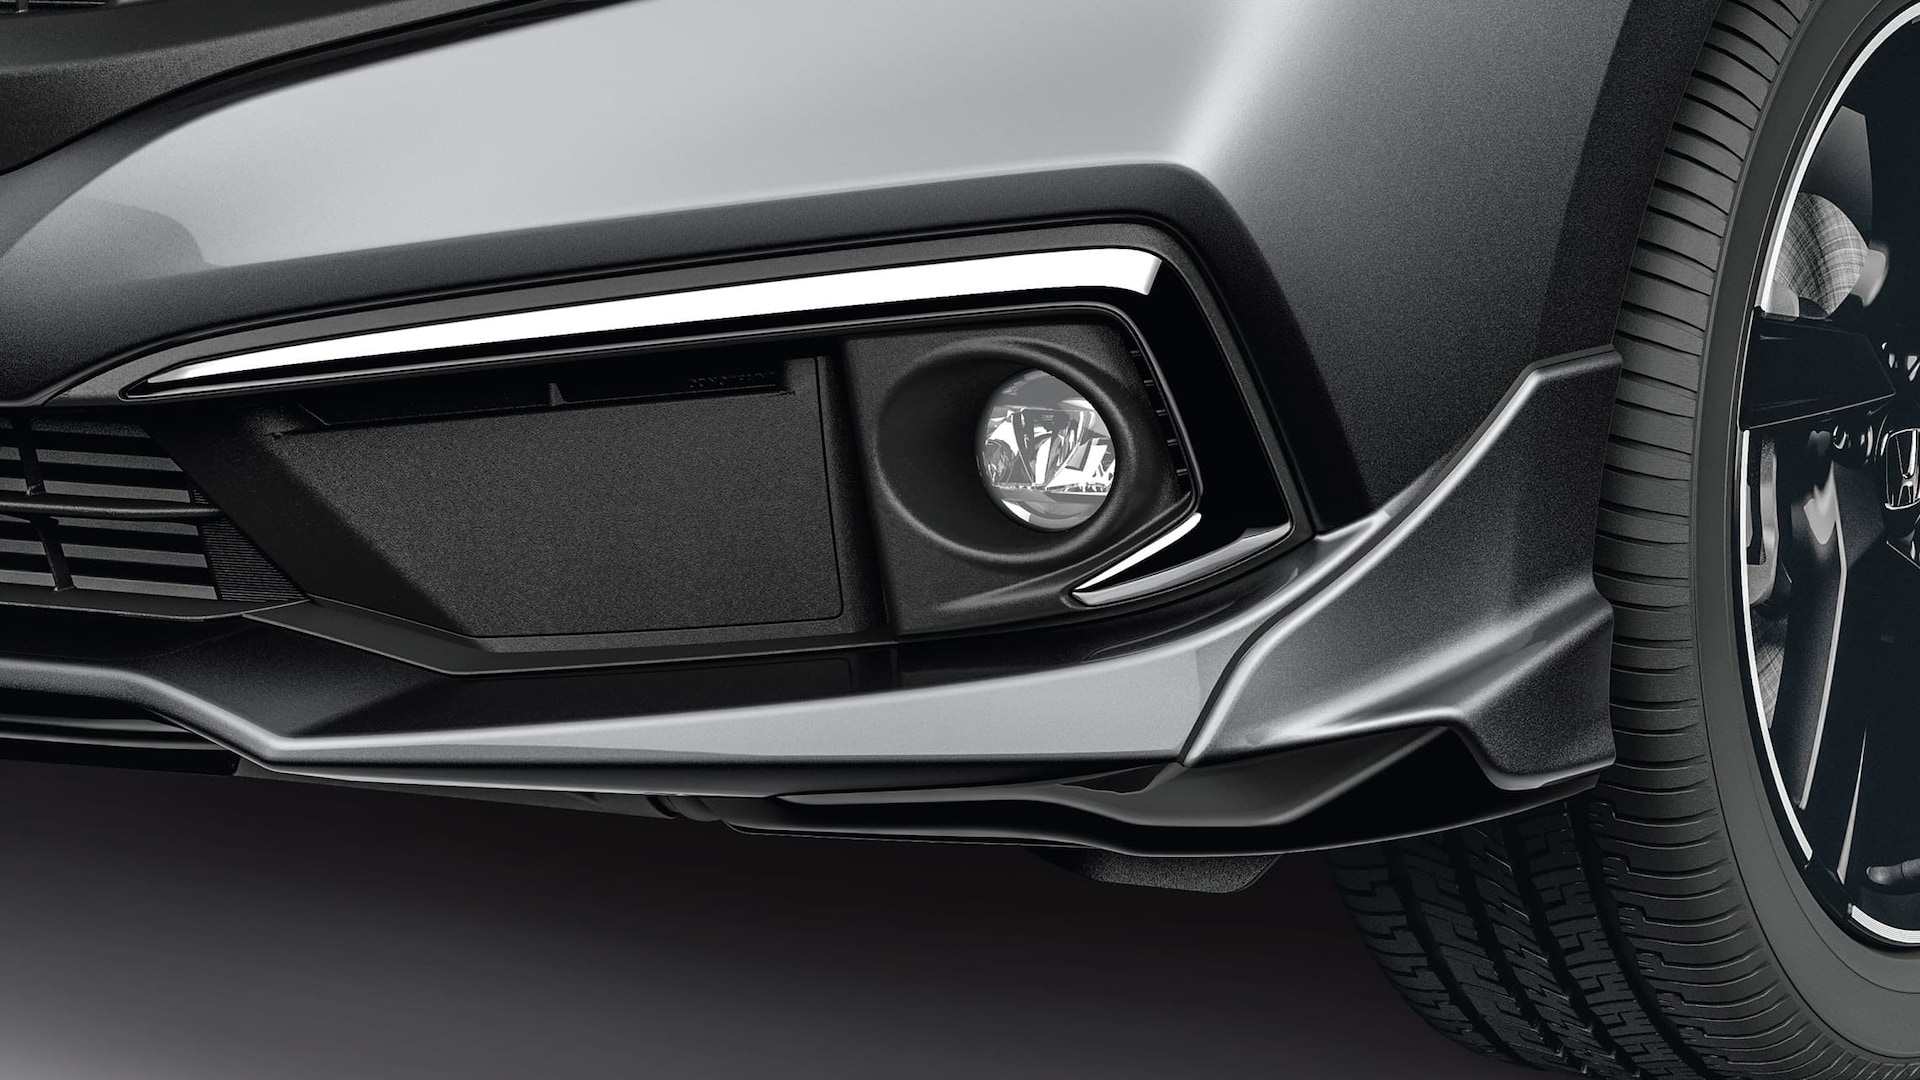 LED fog lights detail on the 2020 Honda Civic Sedan in Modern Steel Metallic.